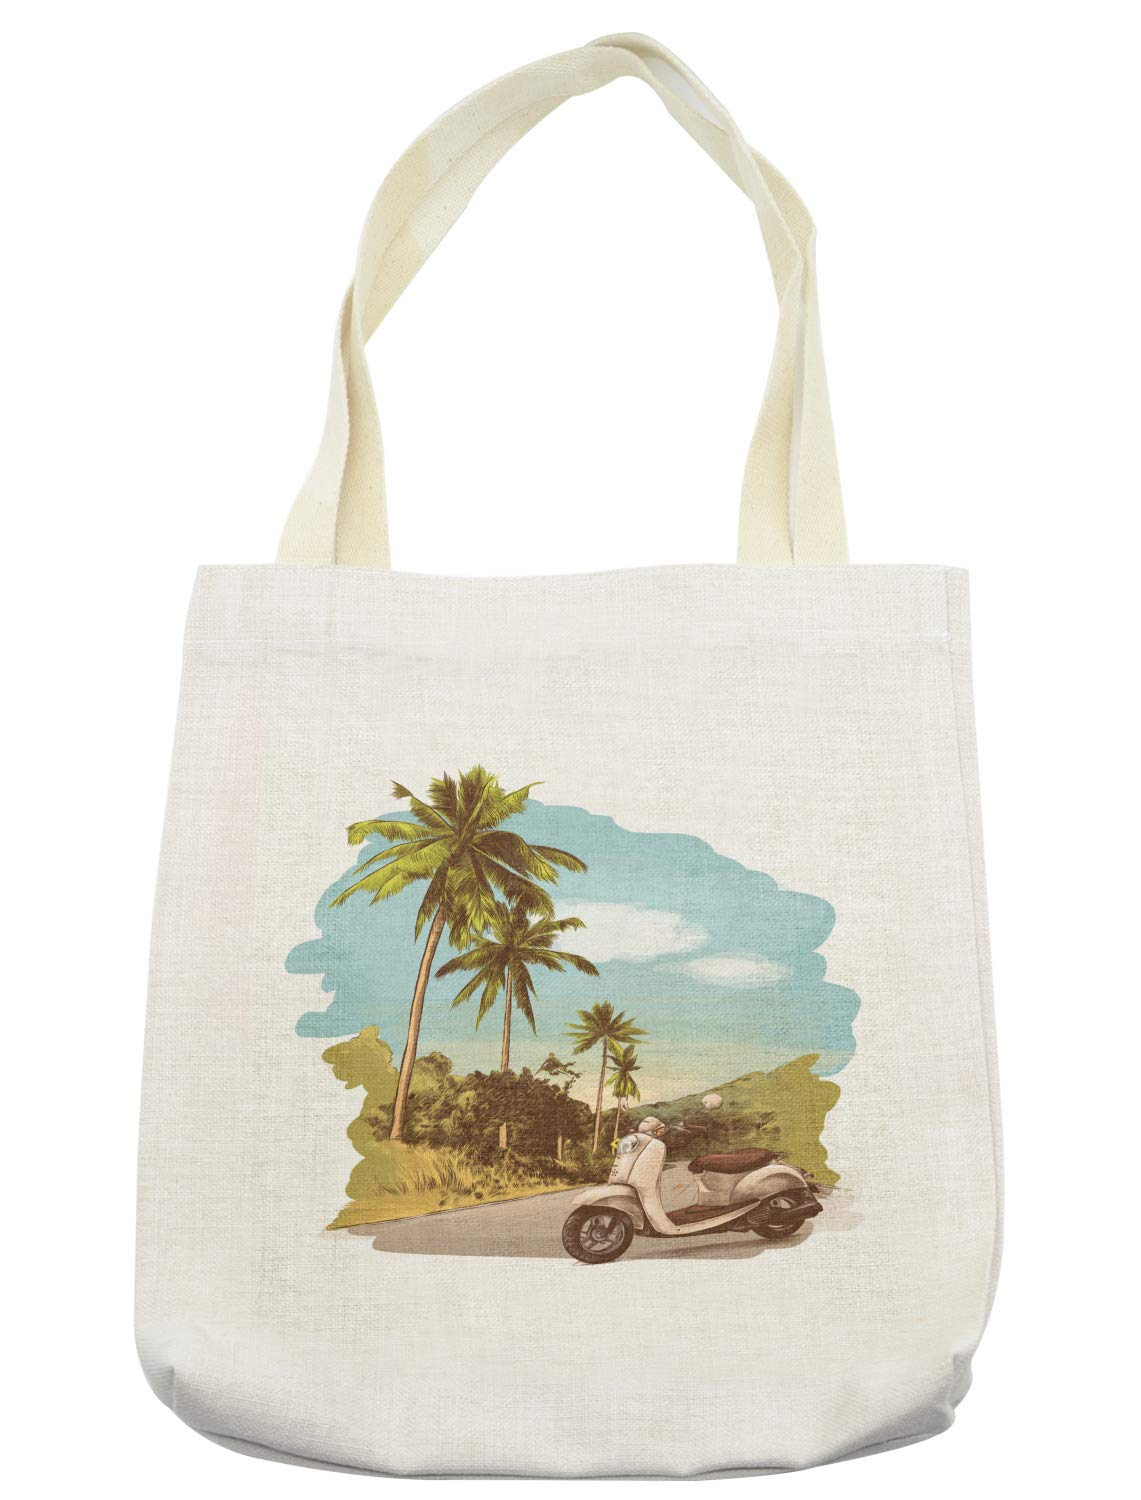 Ambesonne Retro Tote Bag, Faded Effect Vintage Scooter Stands on the Road Jungle with Palm Trees on the Edges, Cloth Linen Reusable Bag for Shopping Books Beach and More, 16.5'' X 14'', Cream by Ambesonne